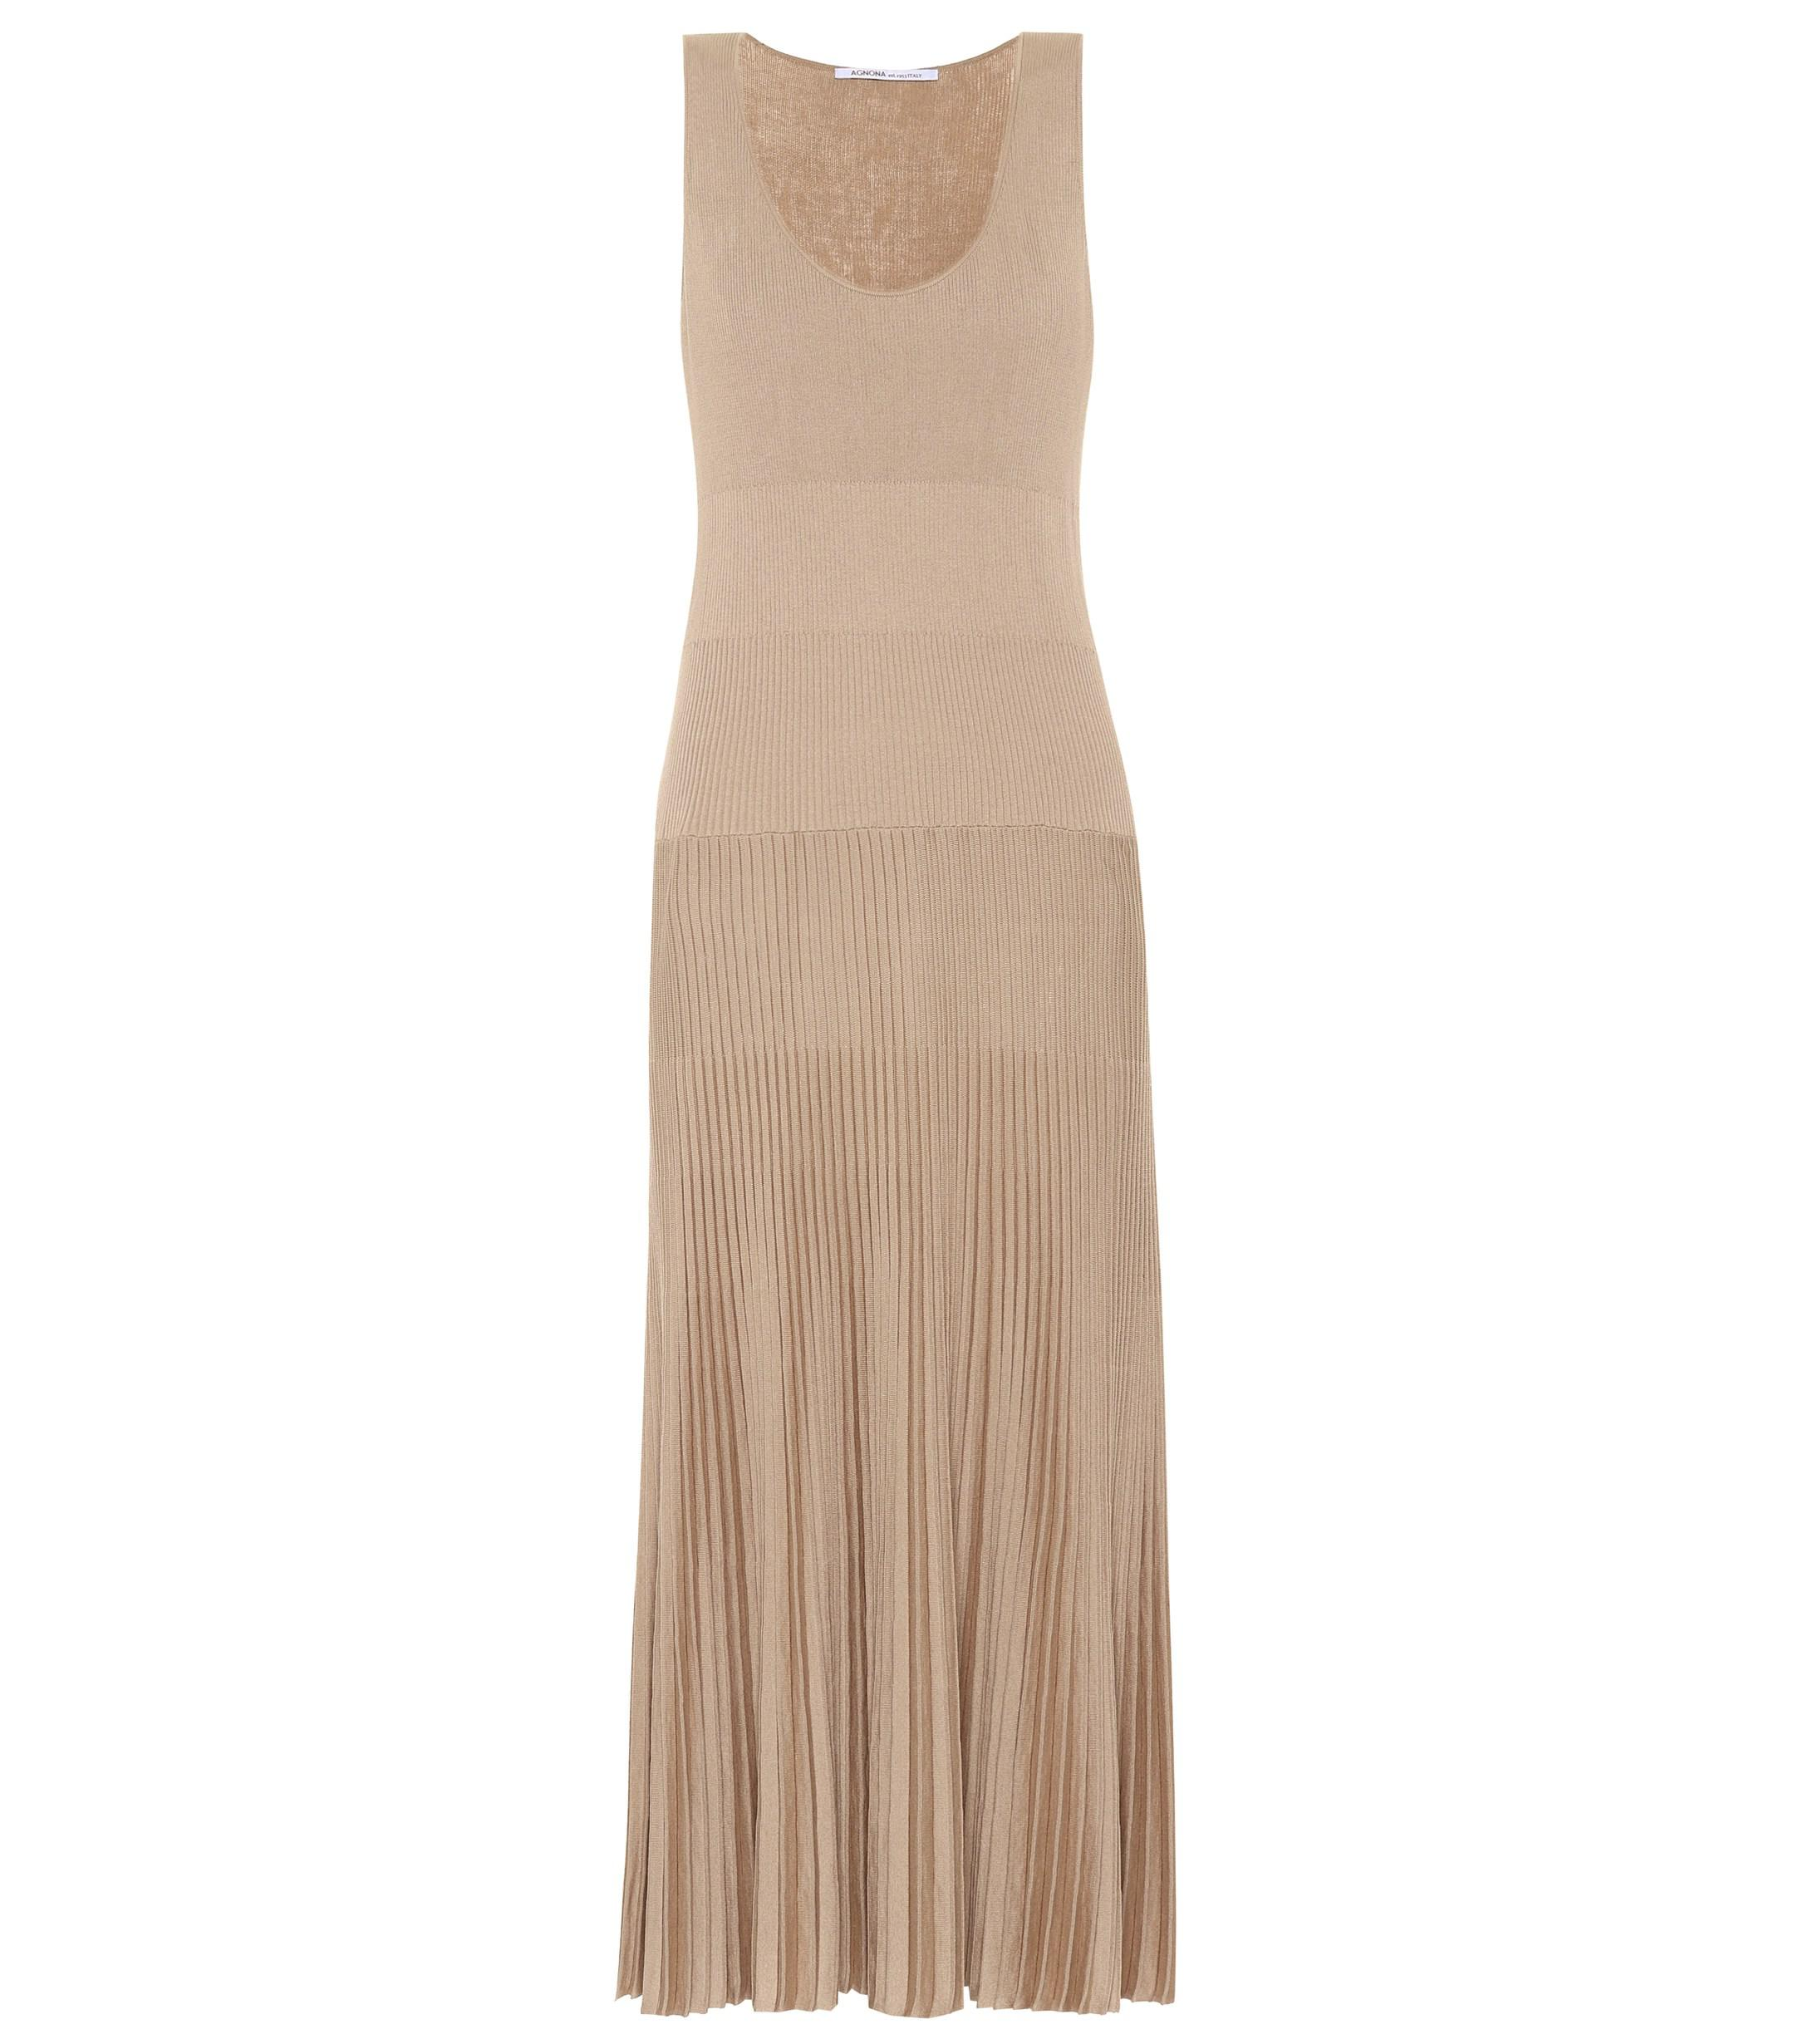 a7dc258efd Agnona Cotton And Silk Knit Maxi Dress in Natural - Lyst